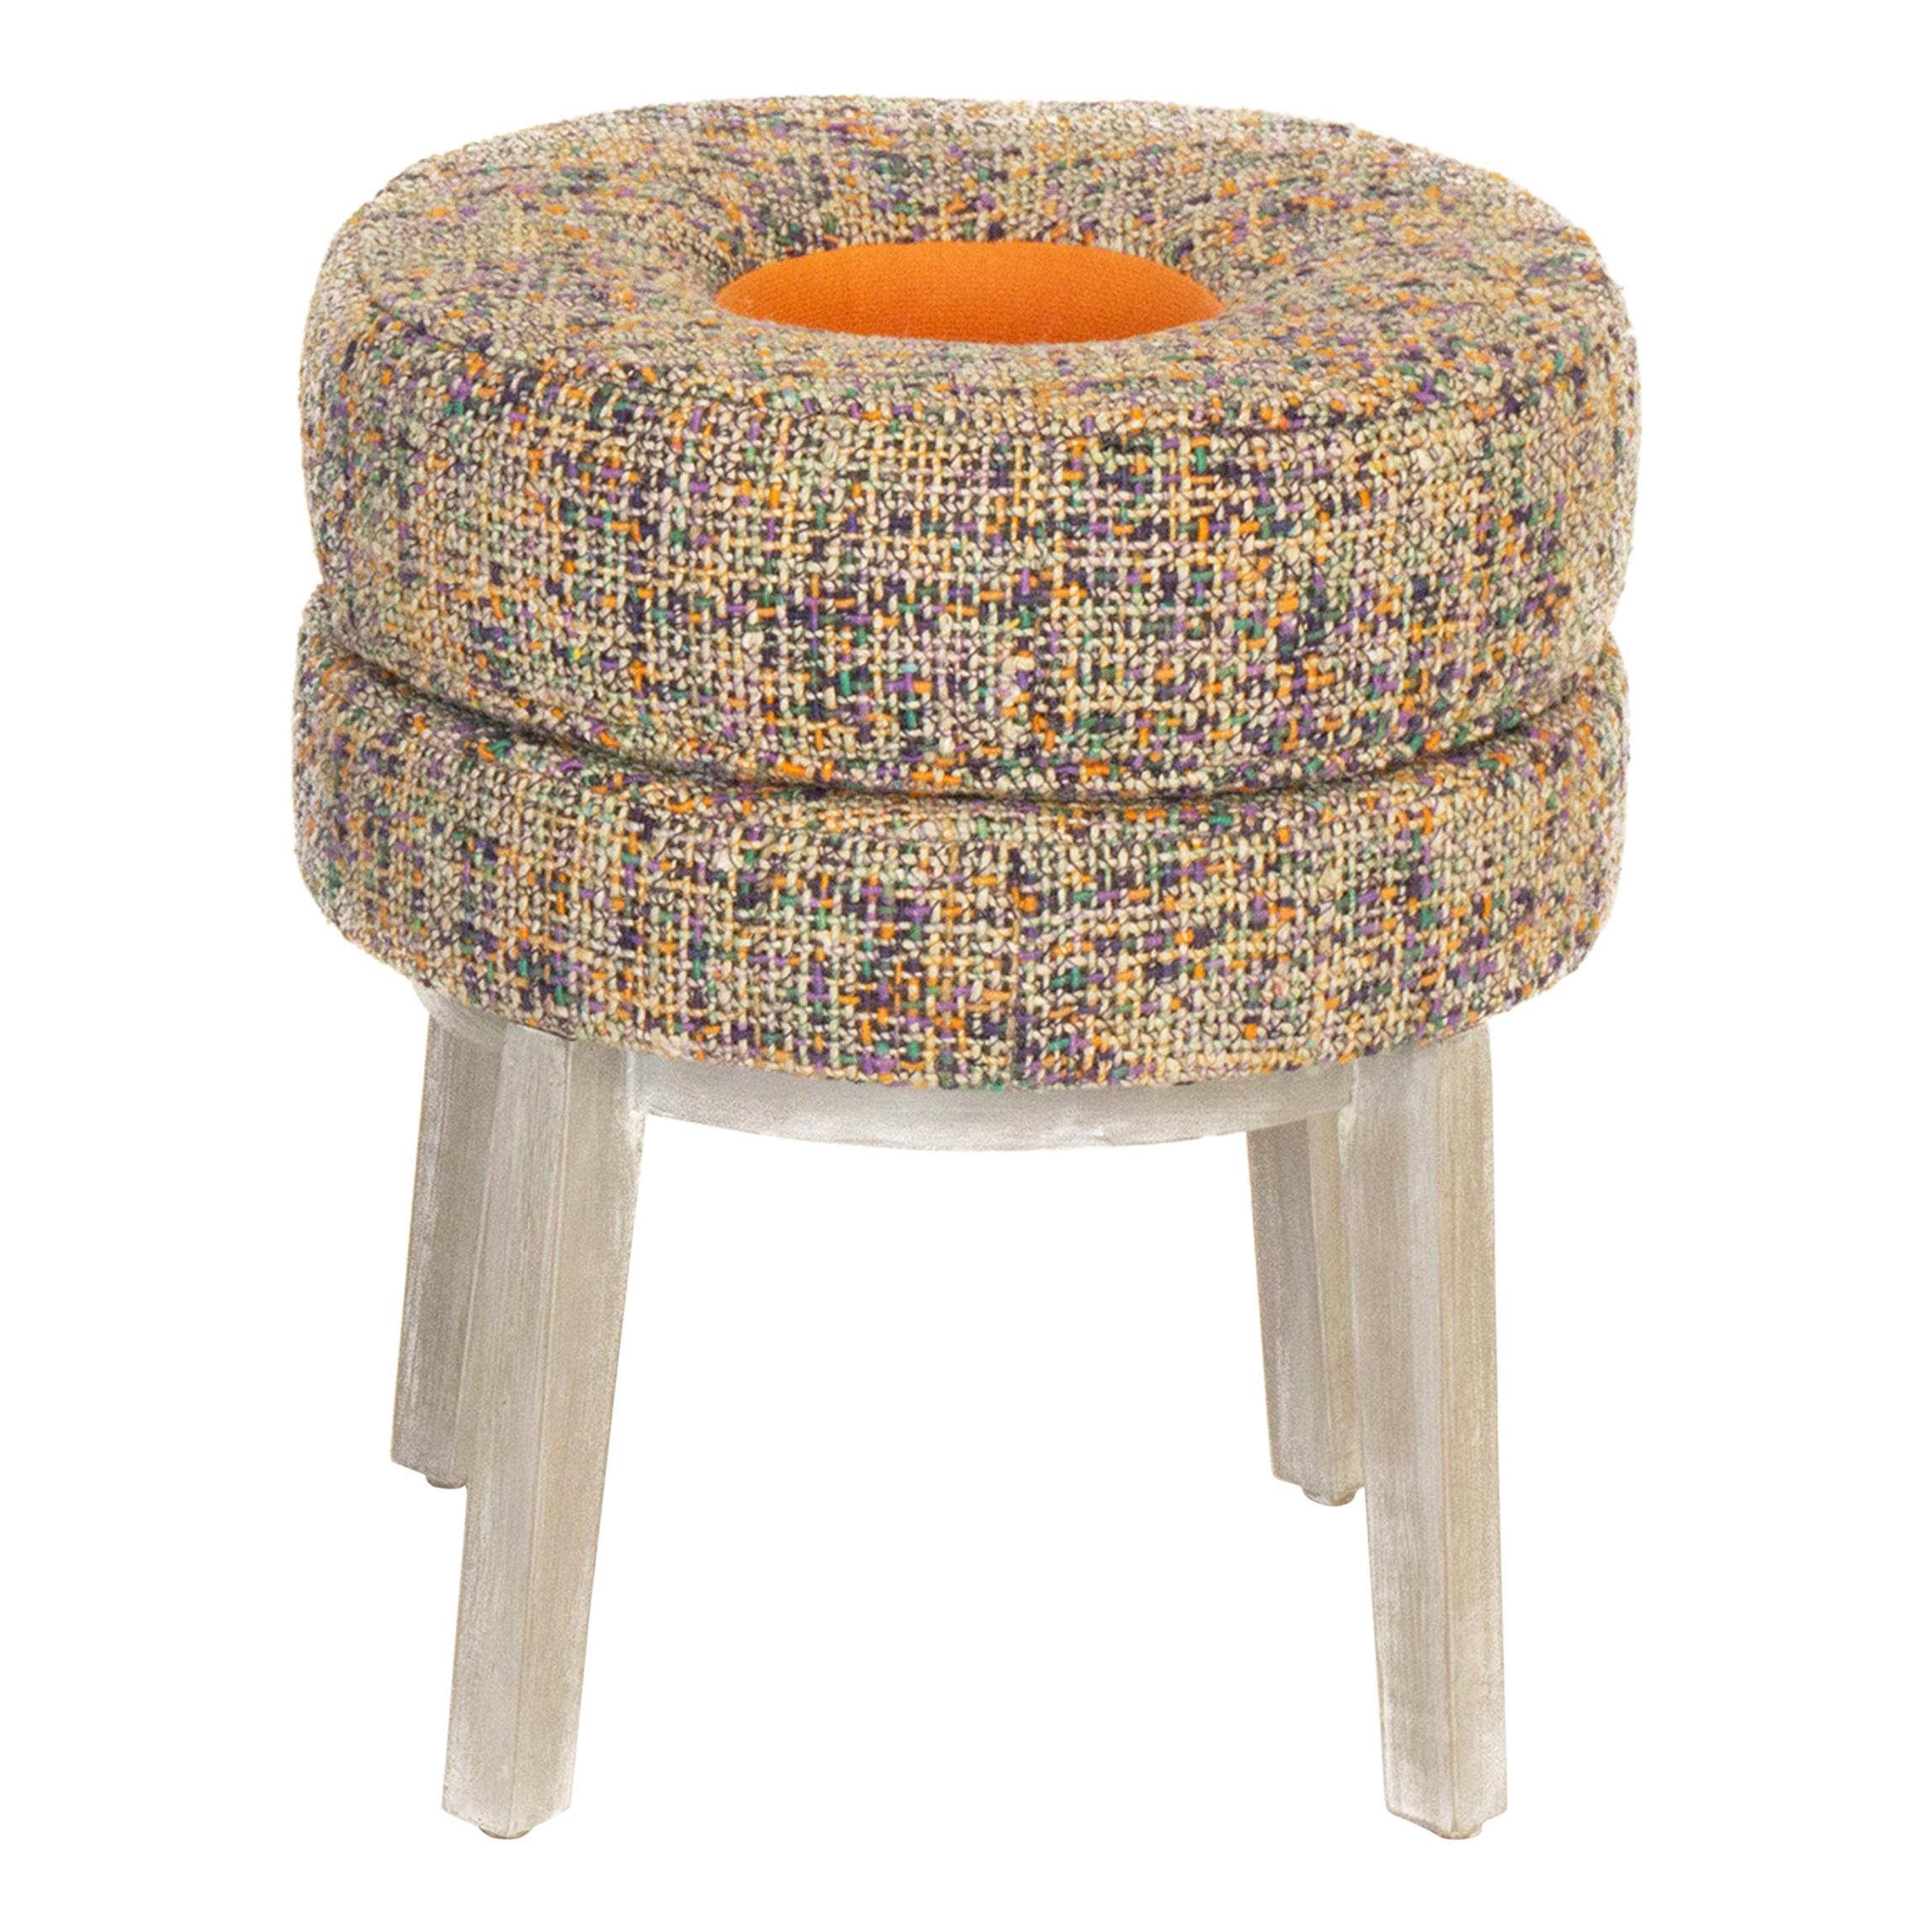 Small Round Stool with Tweed Upholstery & Orange Vinyl Accent